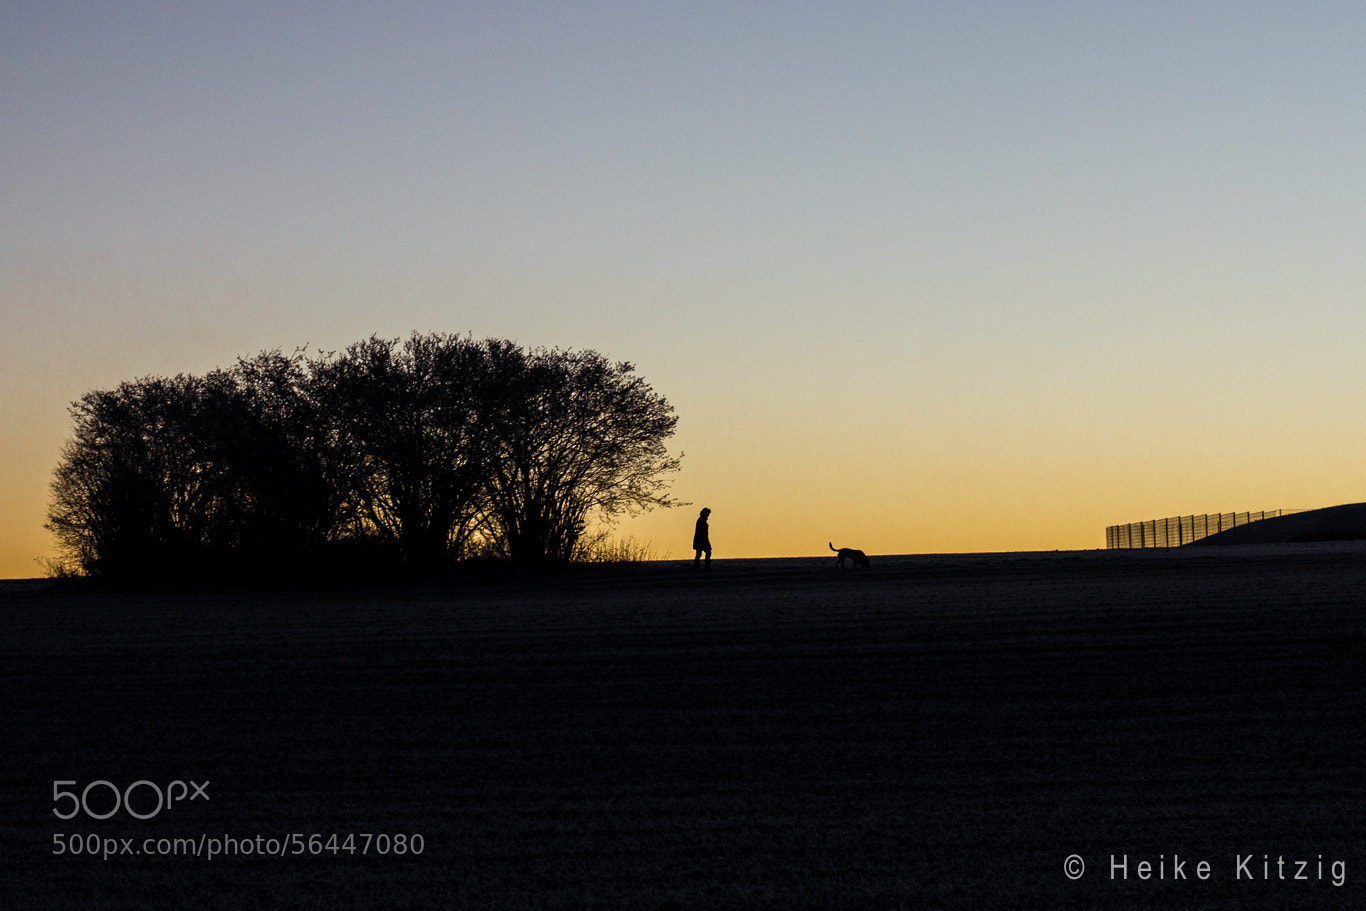 Photograph Walk with dog by Heike Kitzig on 500px